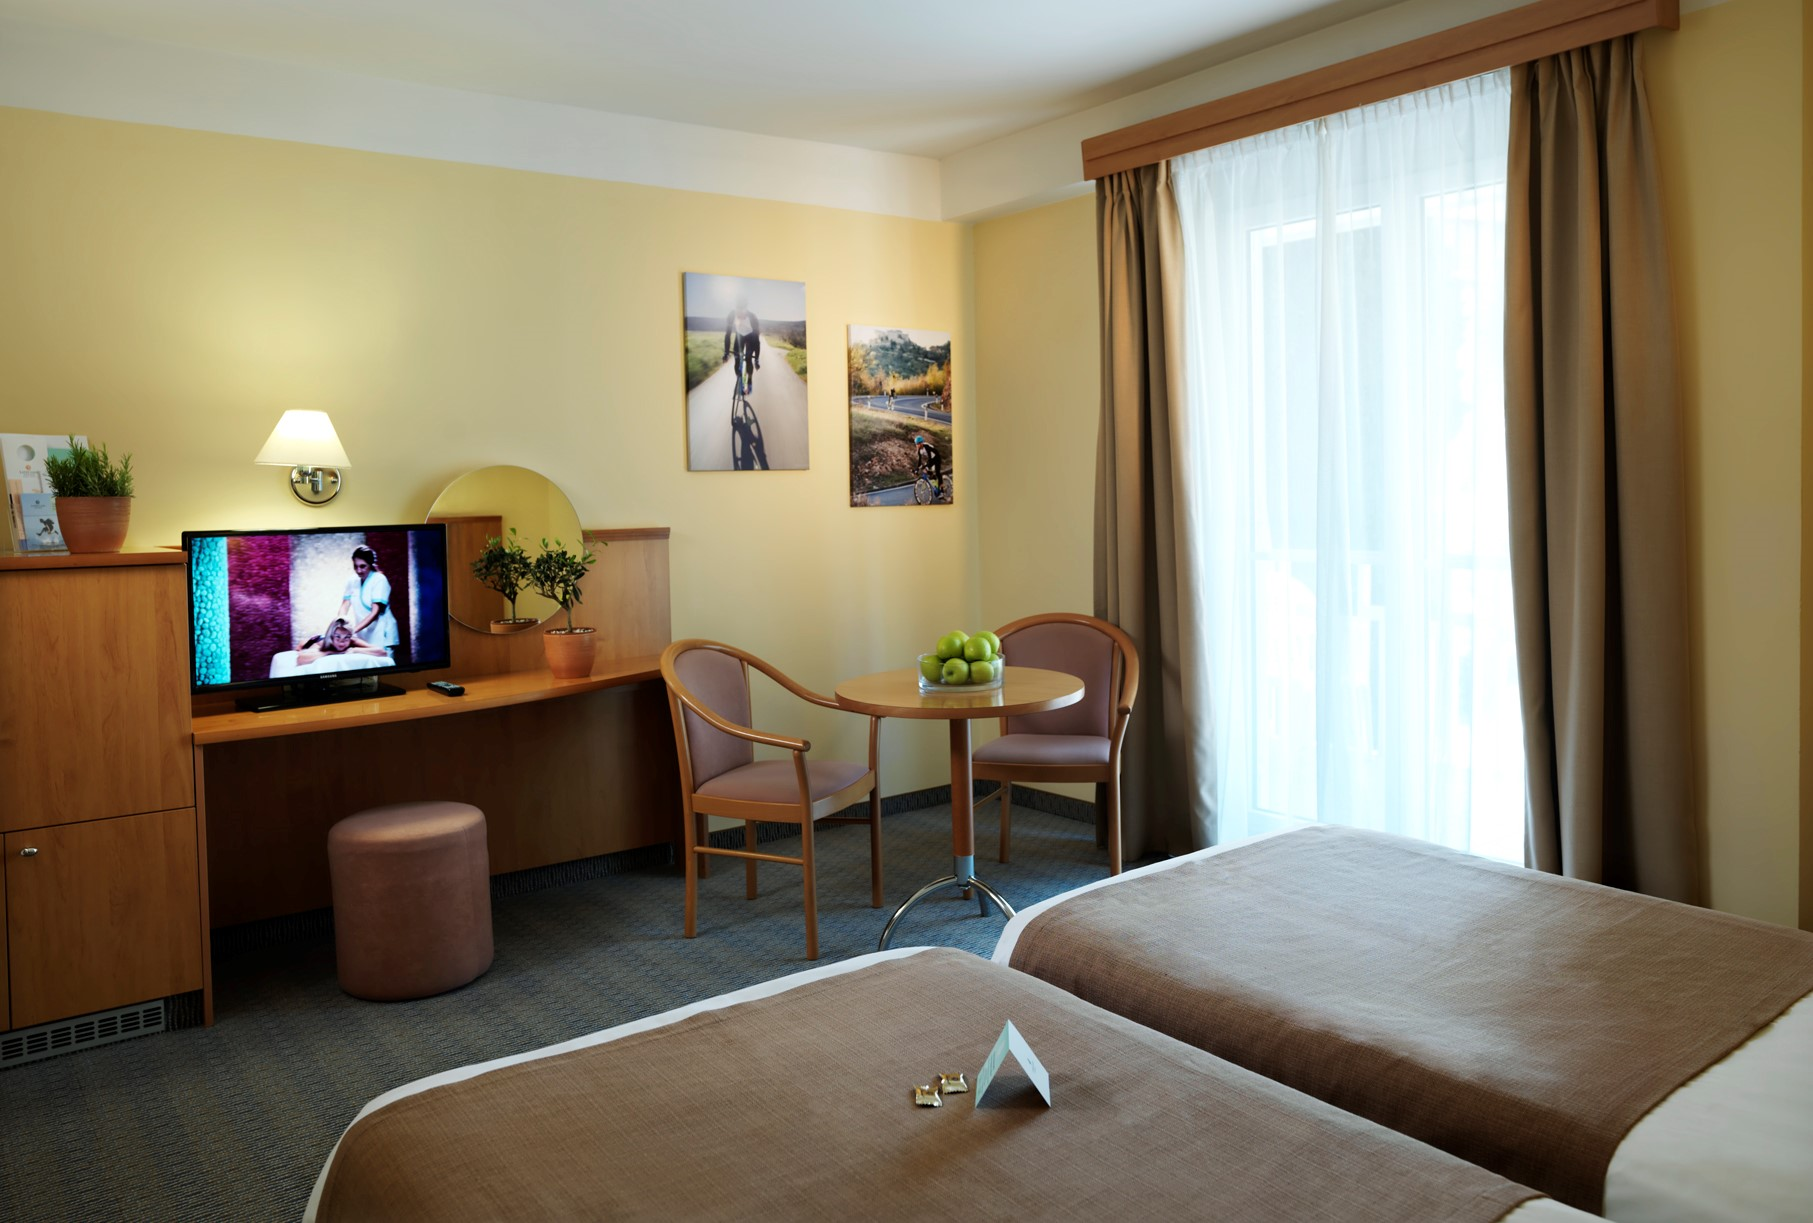 hotel-neptun-twin-bed-television-window